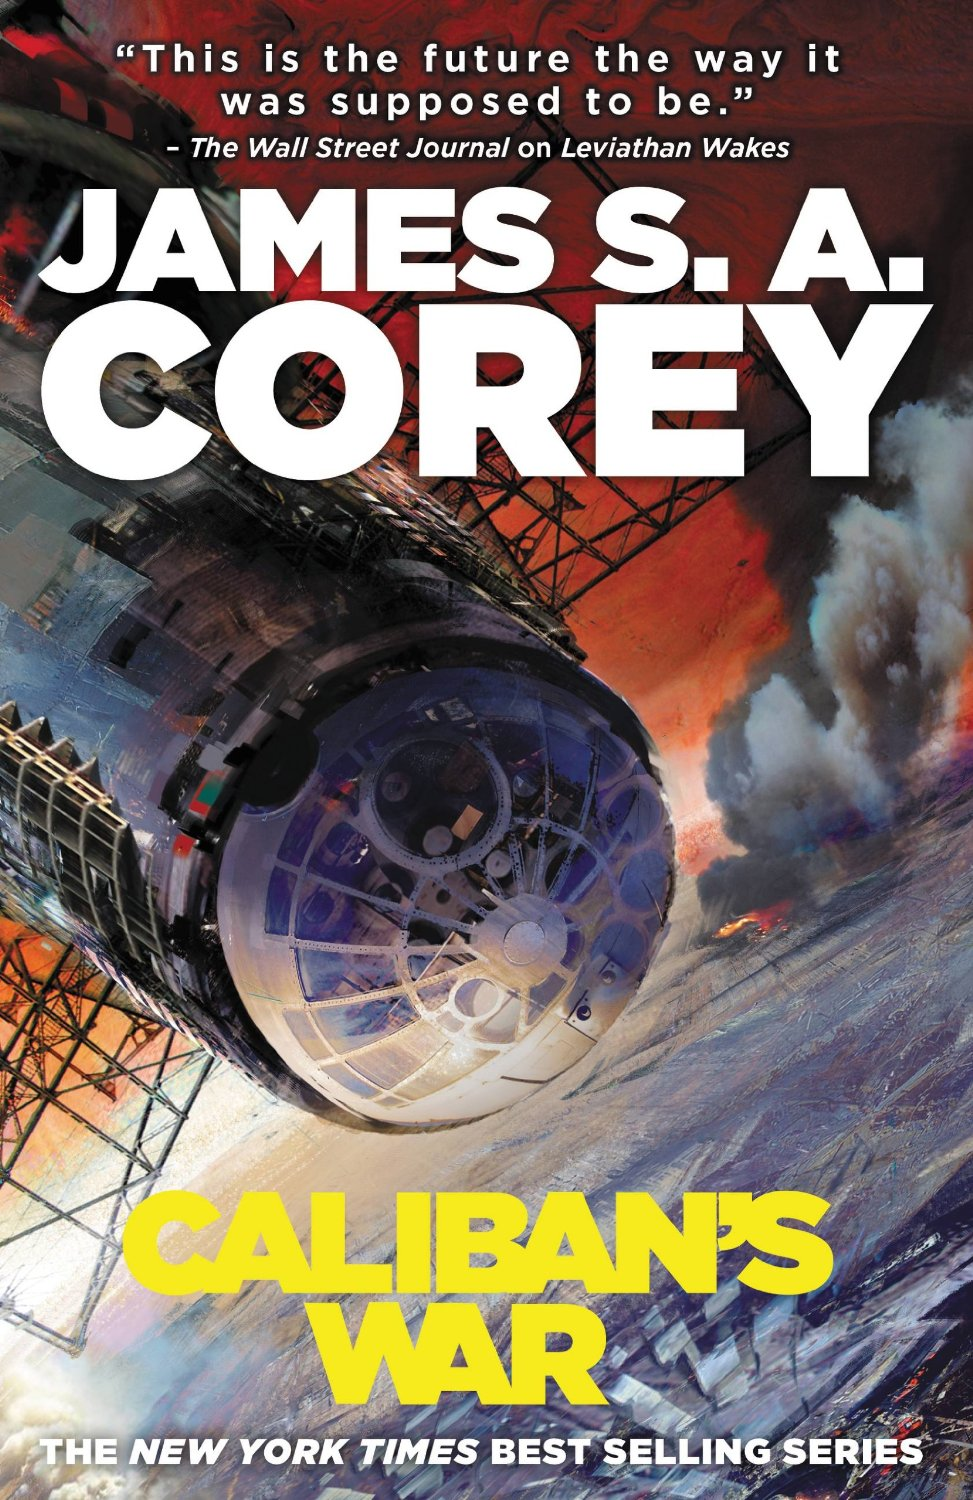 Book Review: Caliban's War (Expanse #2), by James S. A. Corey